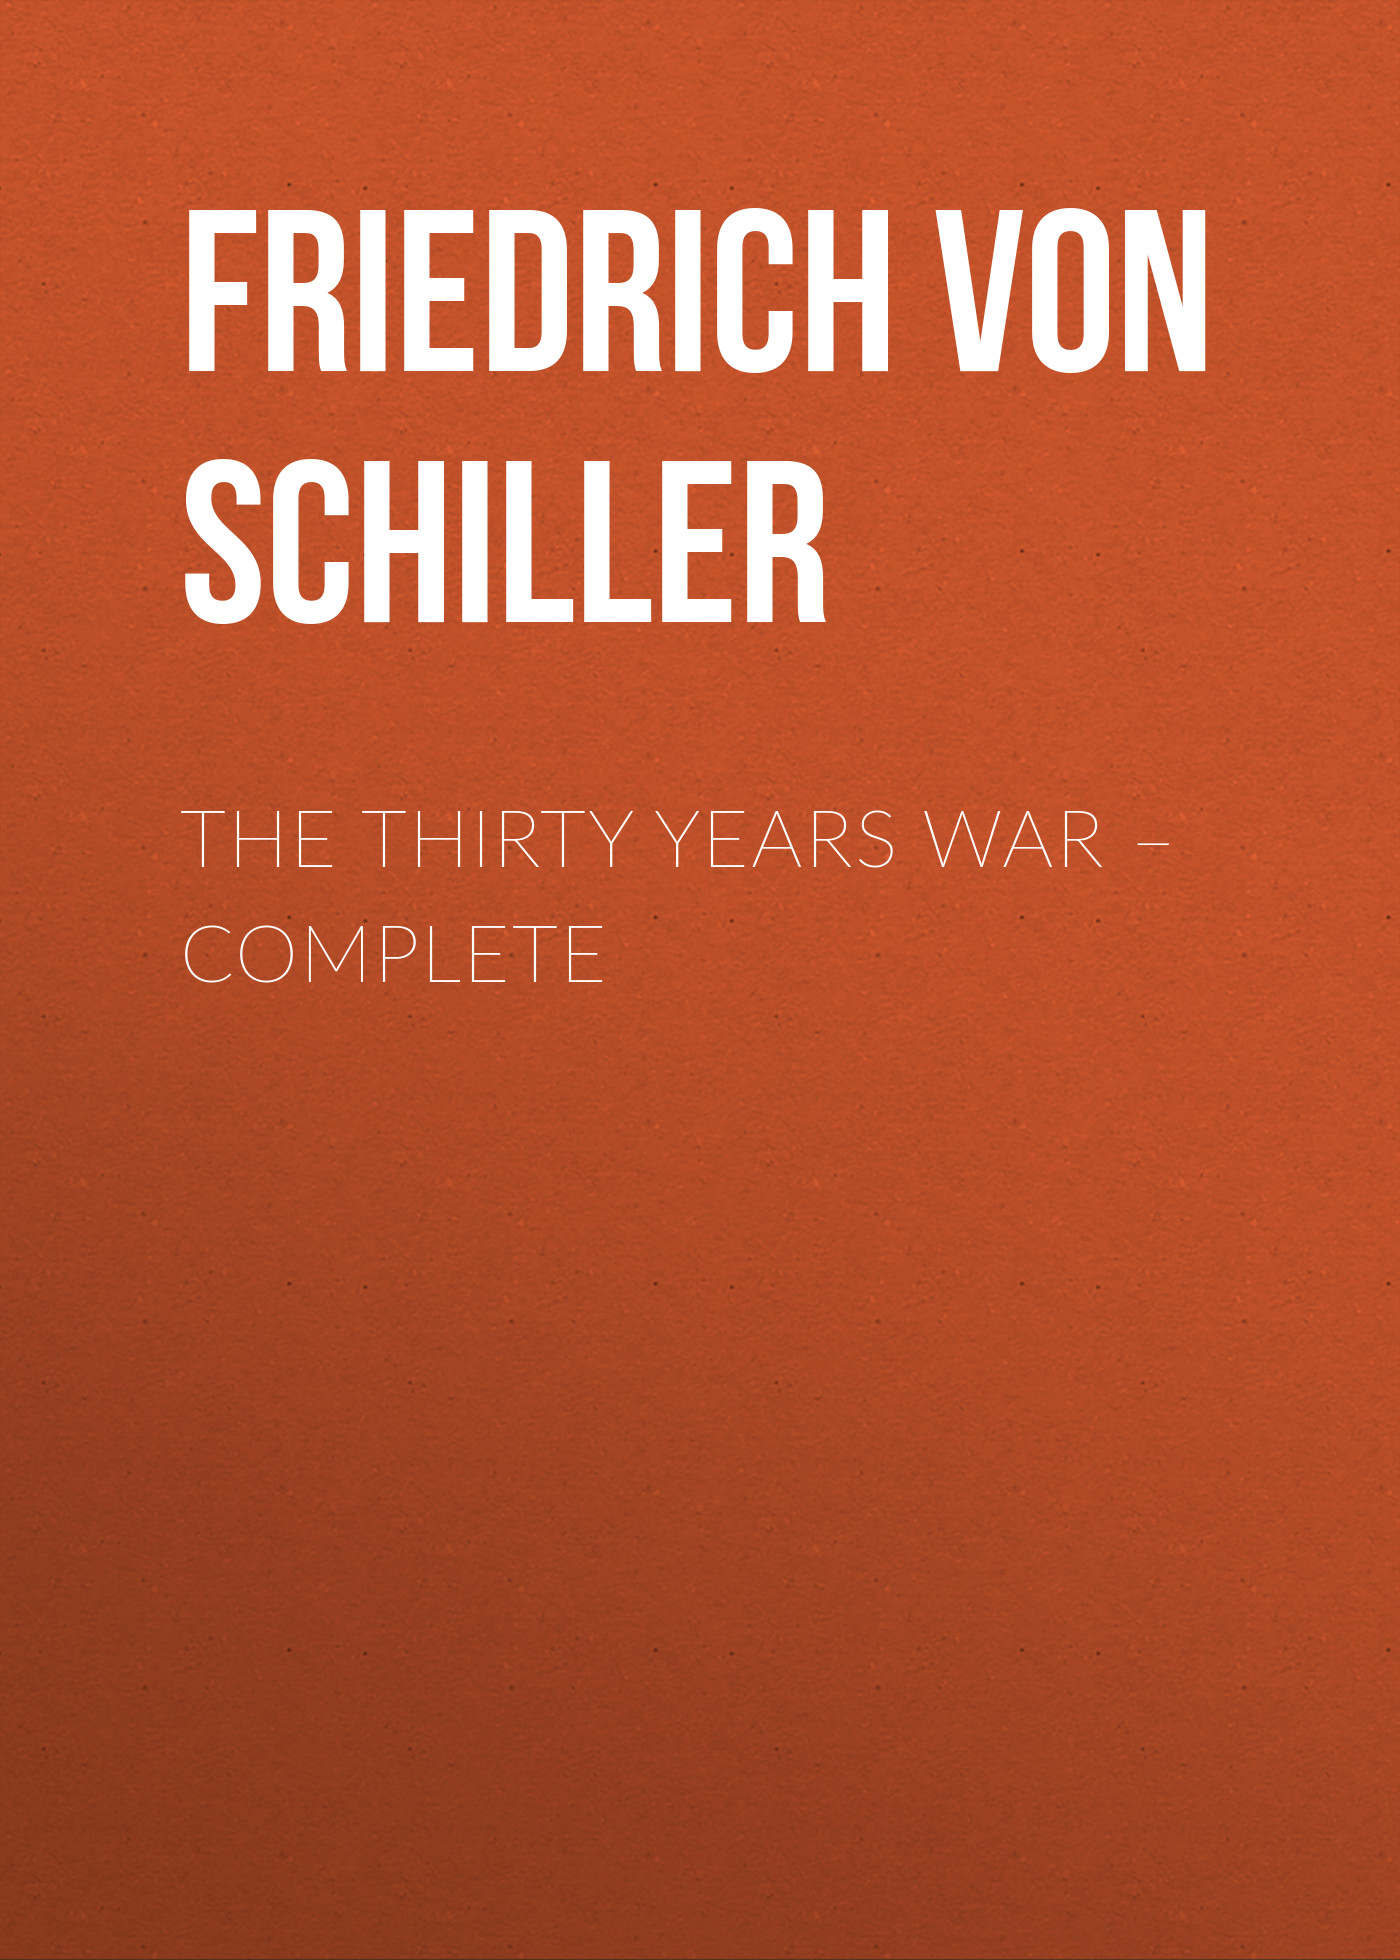 лучшая цена Friedrich von Schiller The Thirty Years War – Complete